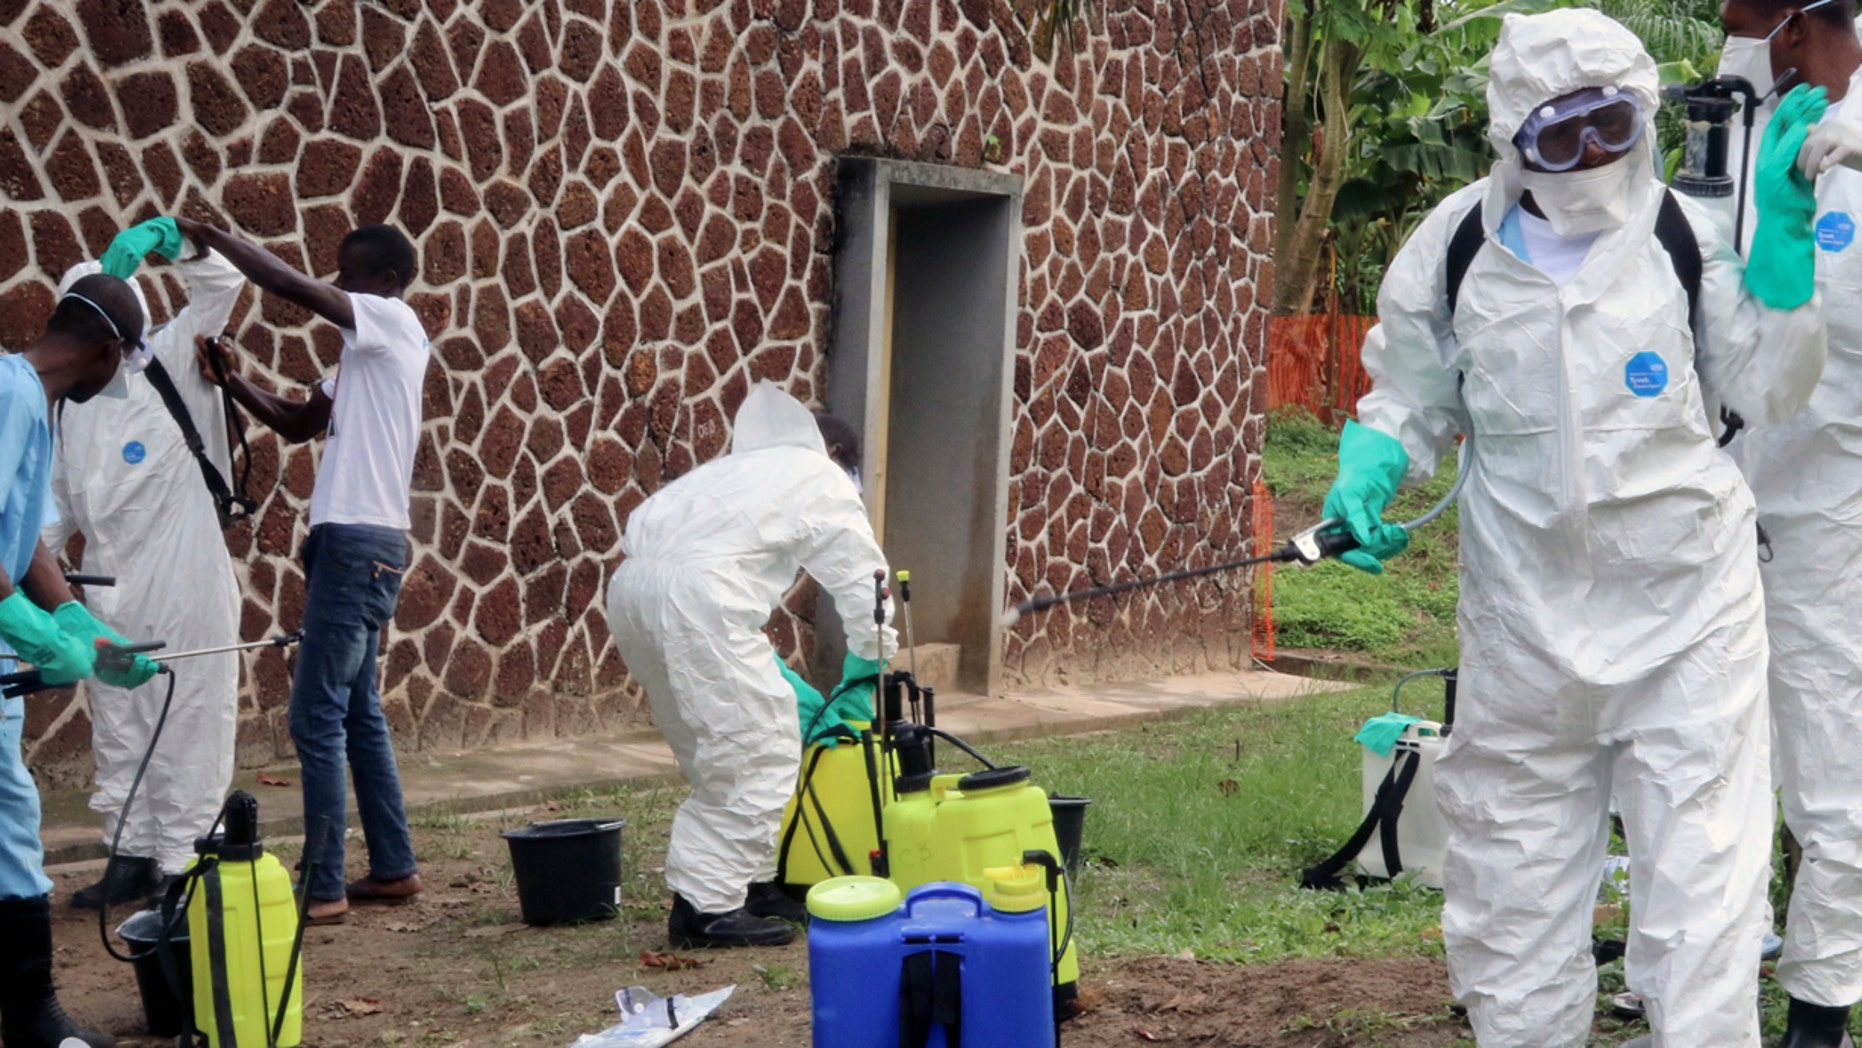 July 24: A man who helped treat Ebola sufferers in Congo is reportedly being held in isolation pending lab results. So far, tests have been negative.